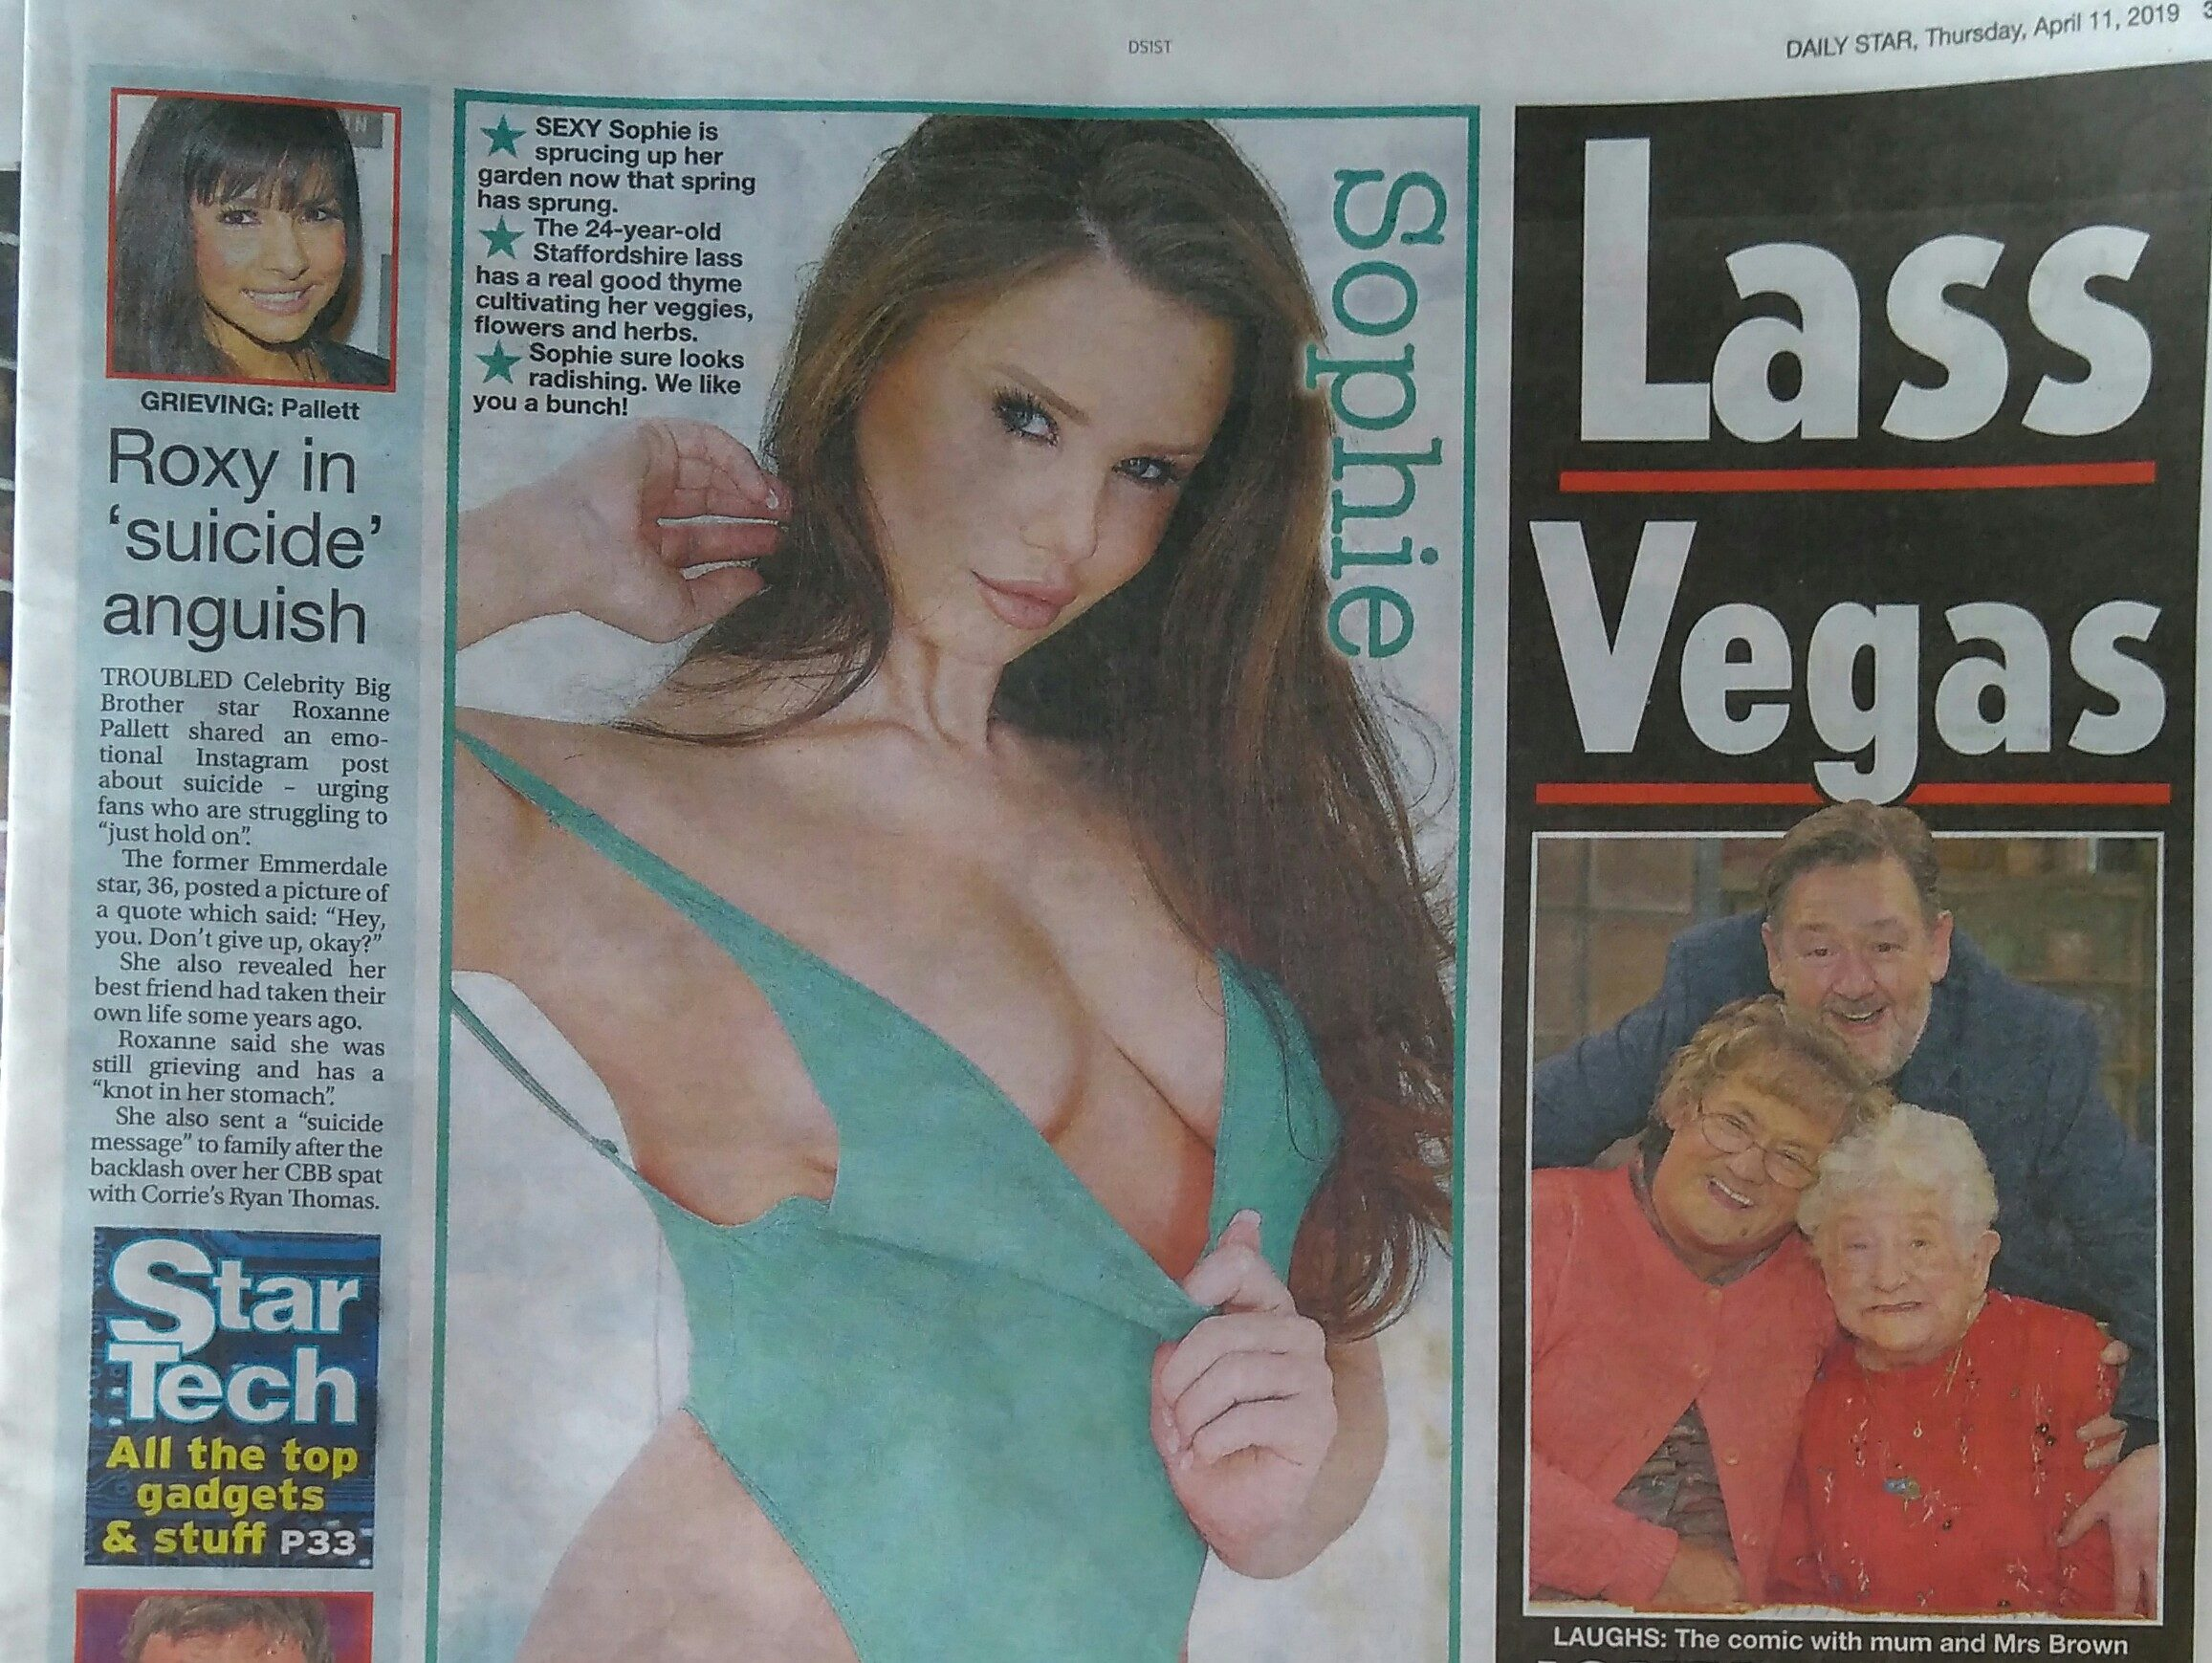 Daily Star page three